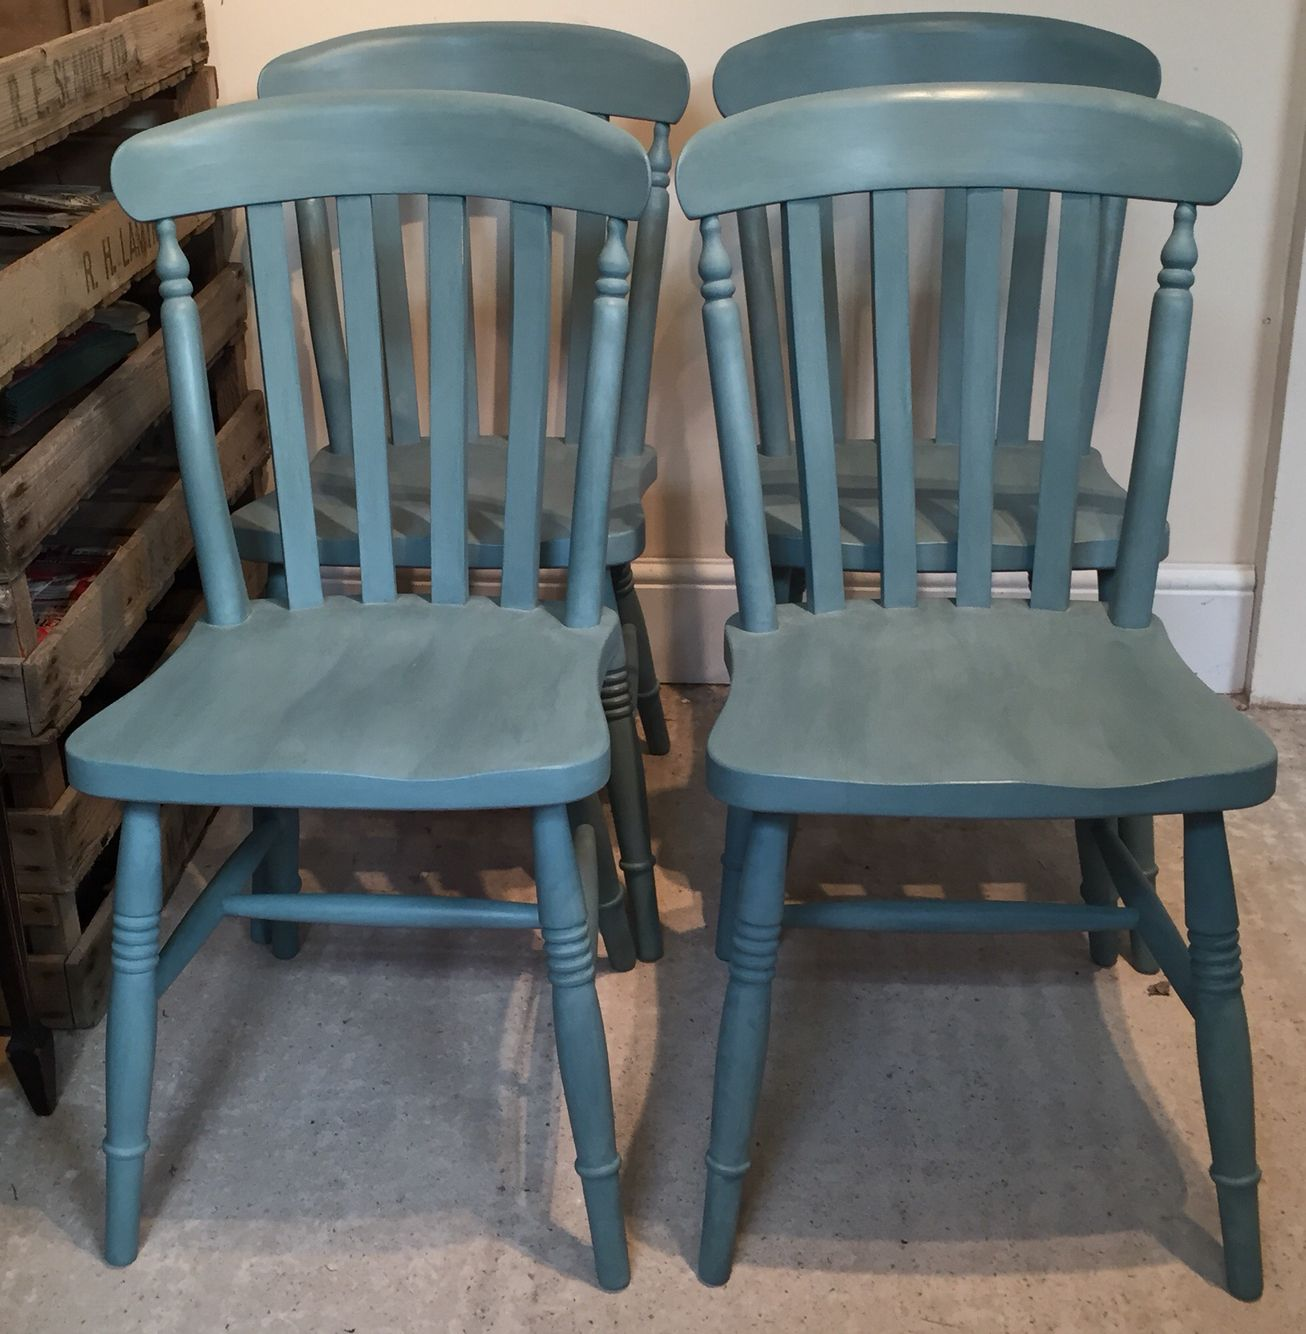 Set of 4 Farmhouse chairs for sale Projekter